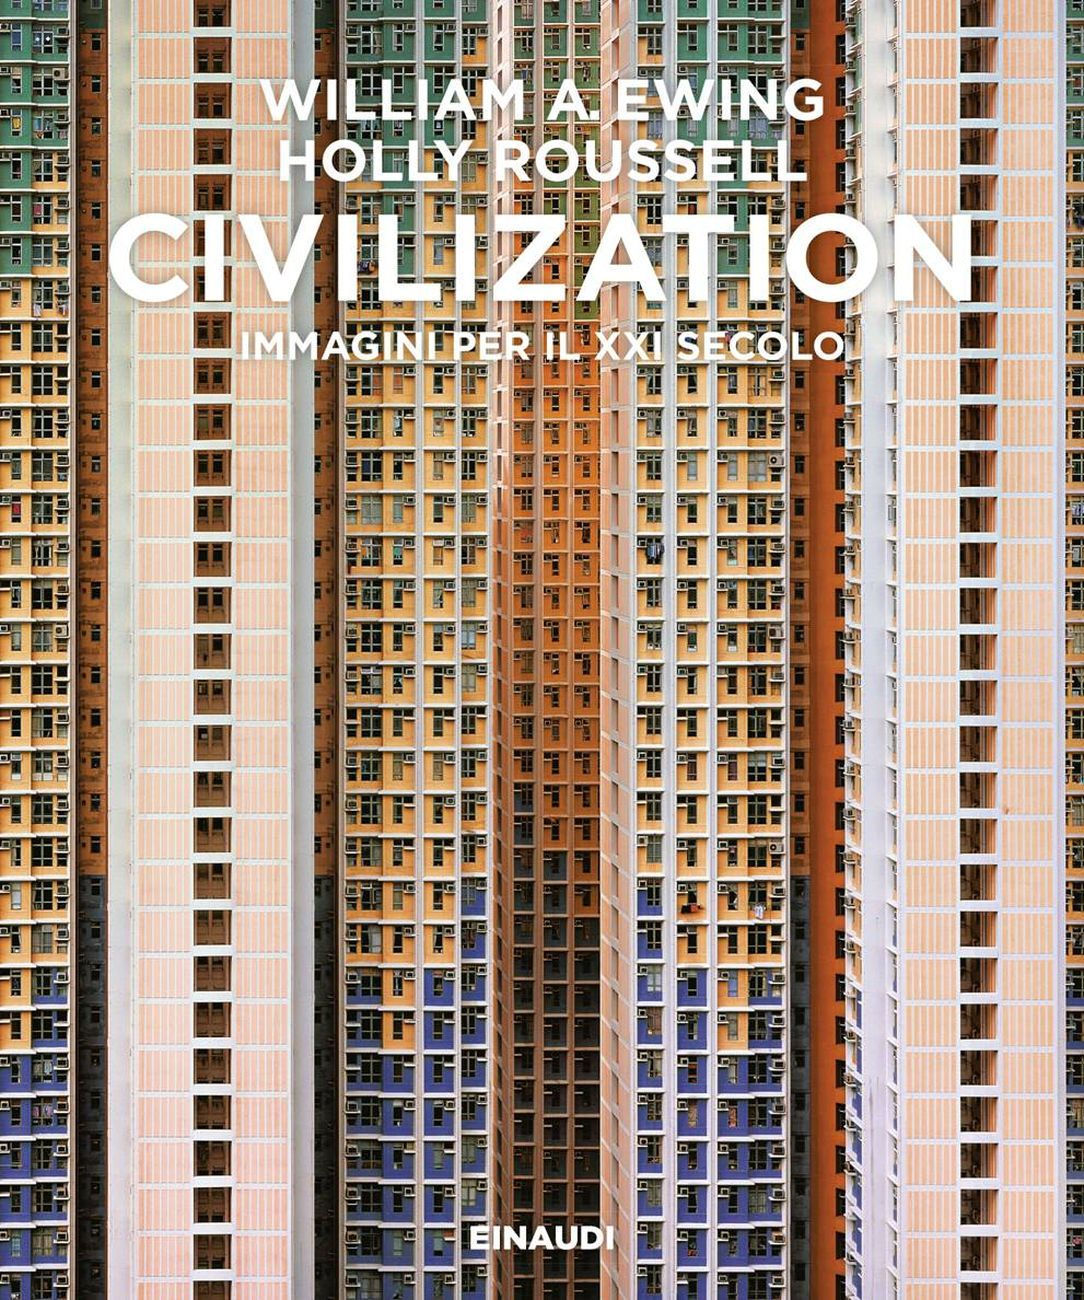 William A. Ewing & Holly Roussell ‒ Civilization. Immagini per il XXI secolo (Einaudi, Torino 2018) _cover